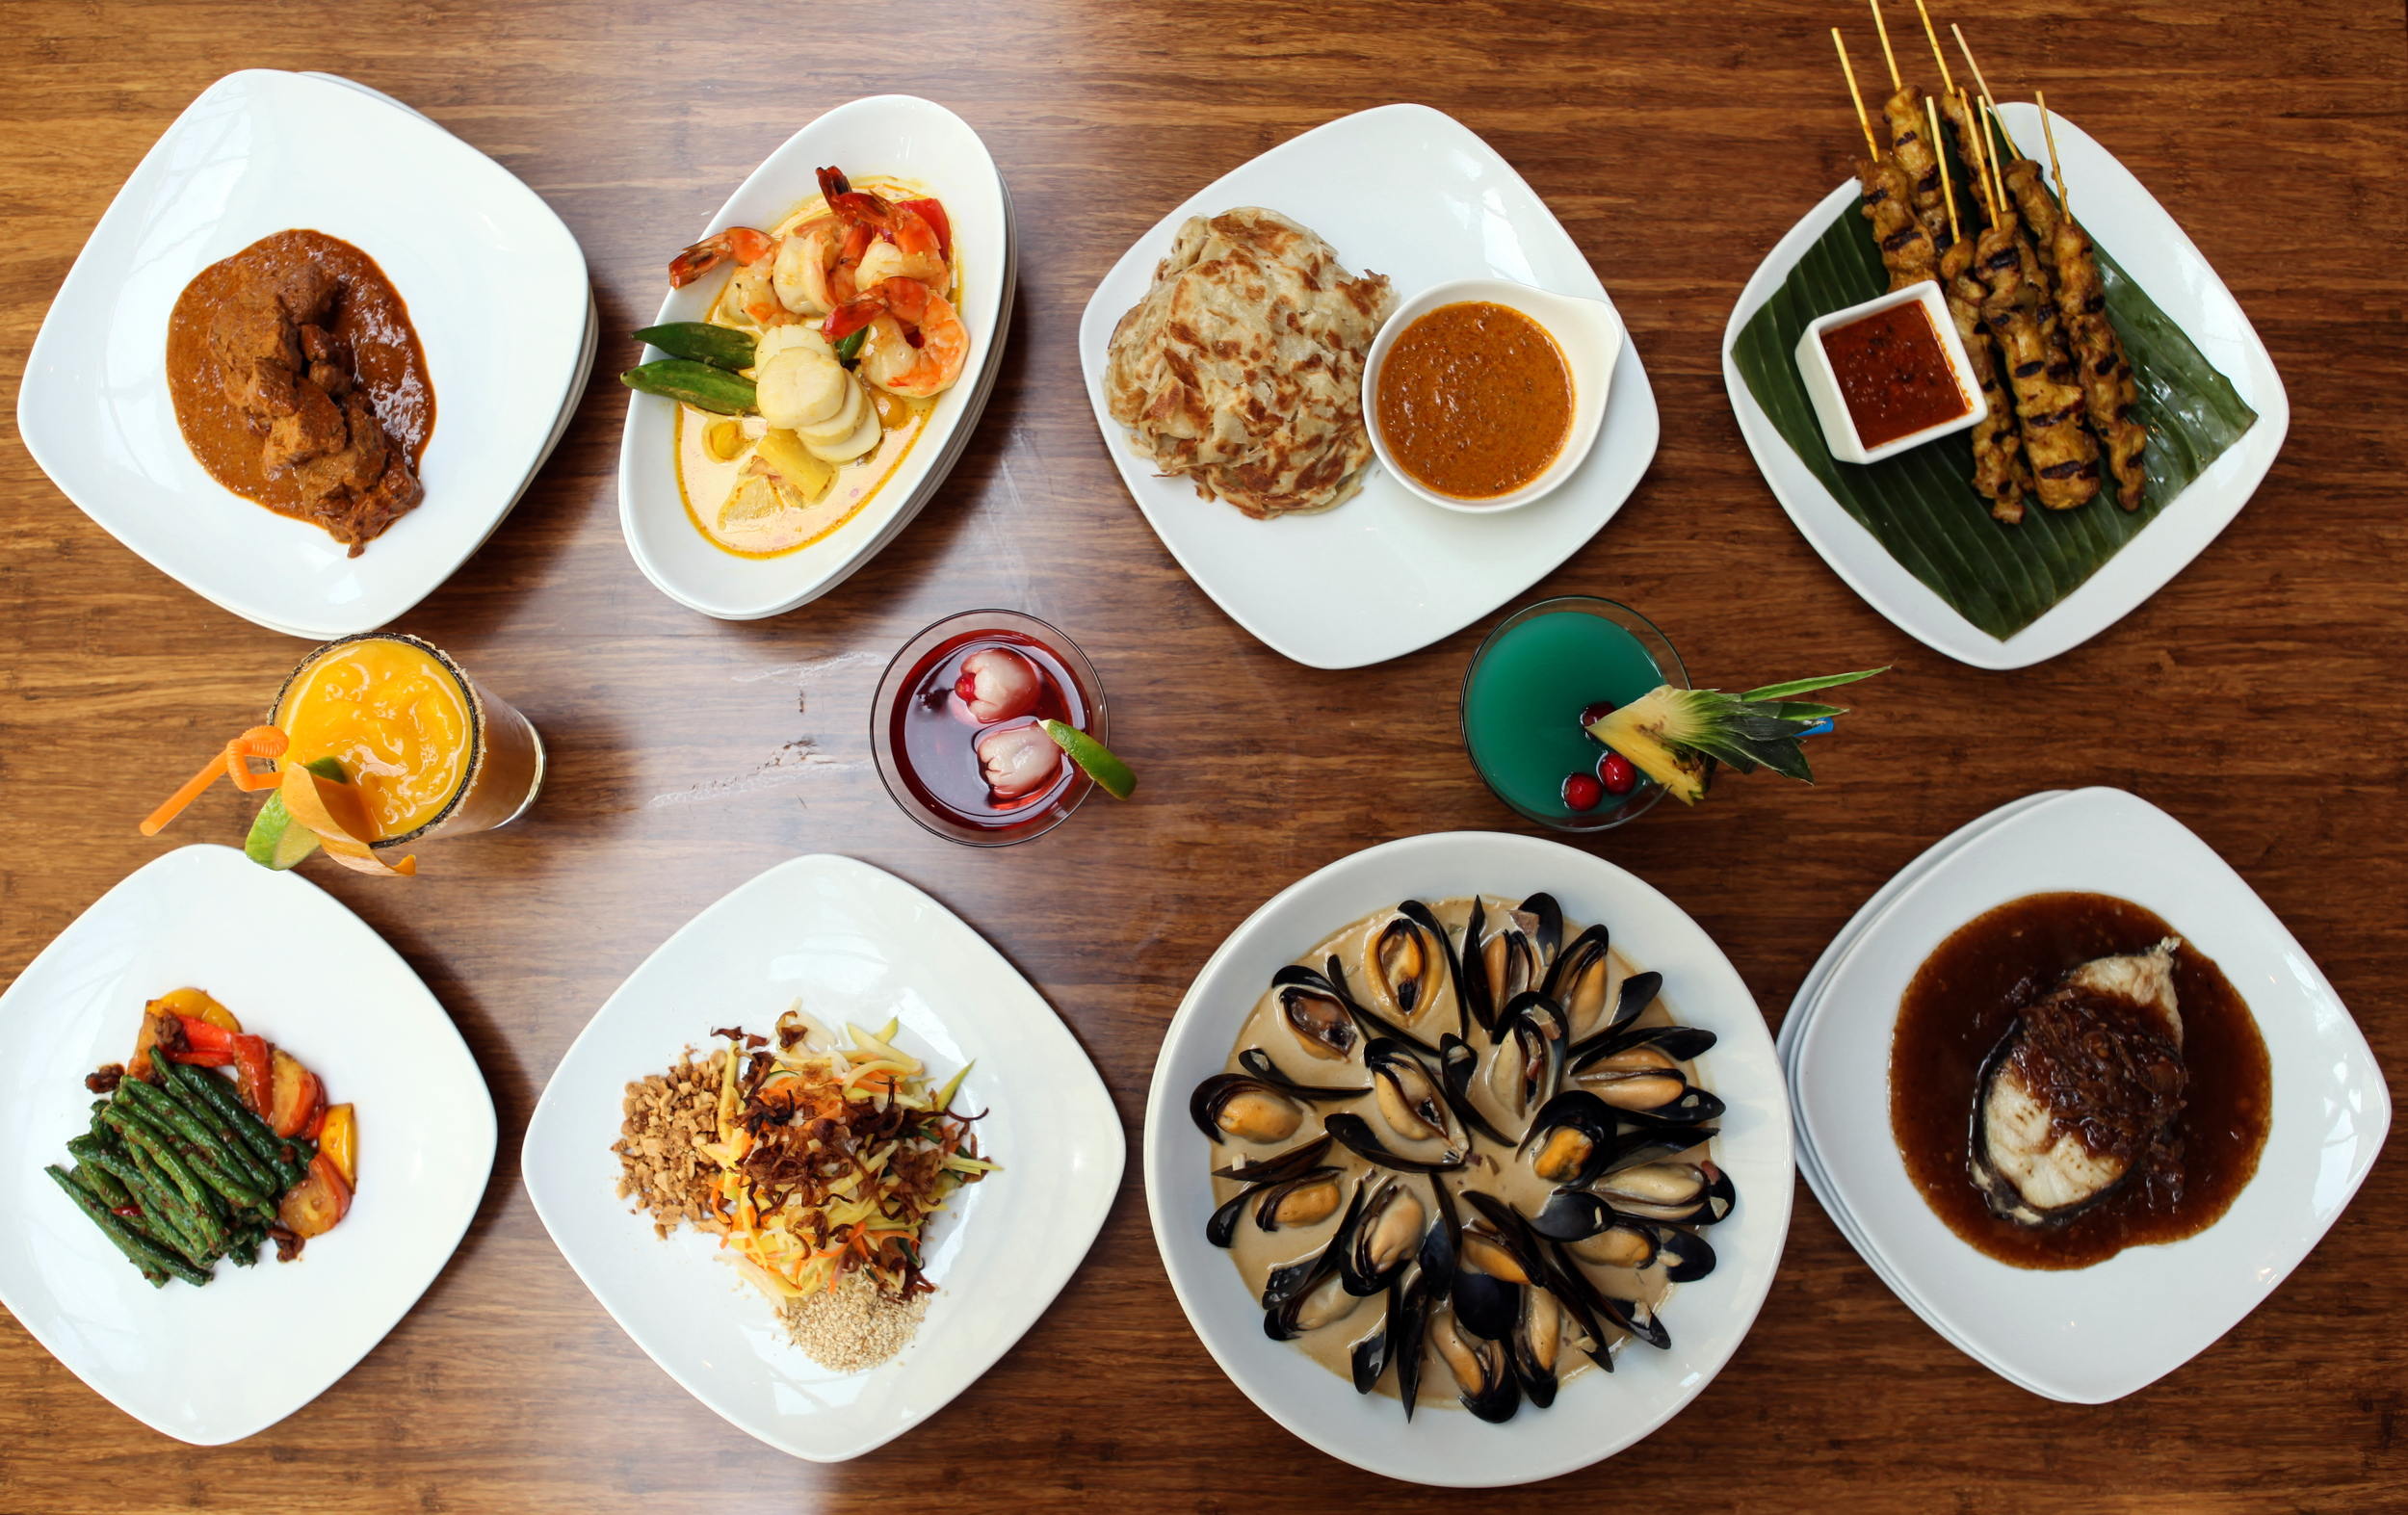 Treat Your Taste Buds To The Savory Delights Of Malaysia